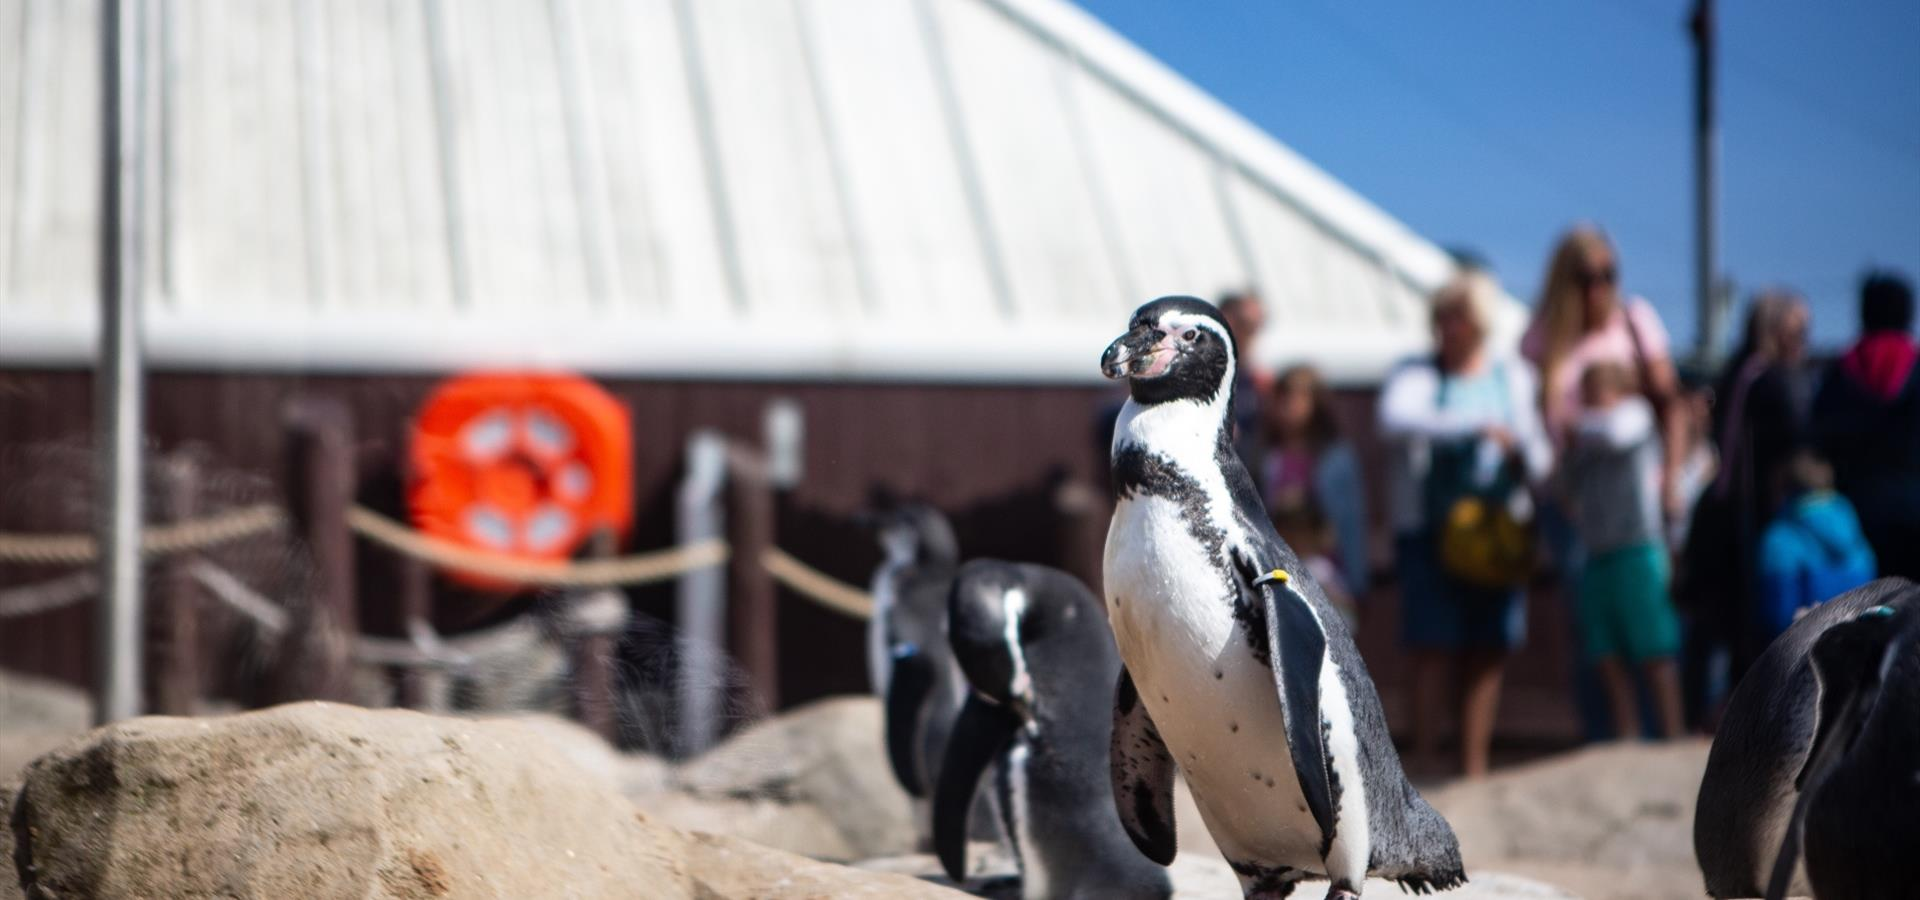 An image of the penguins at Scarborough Sea Life Centre by Duncan Lomax